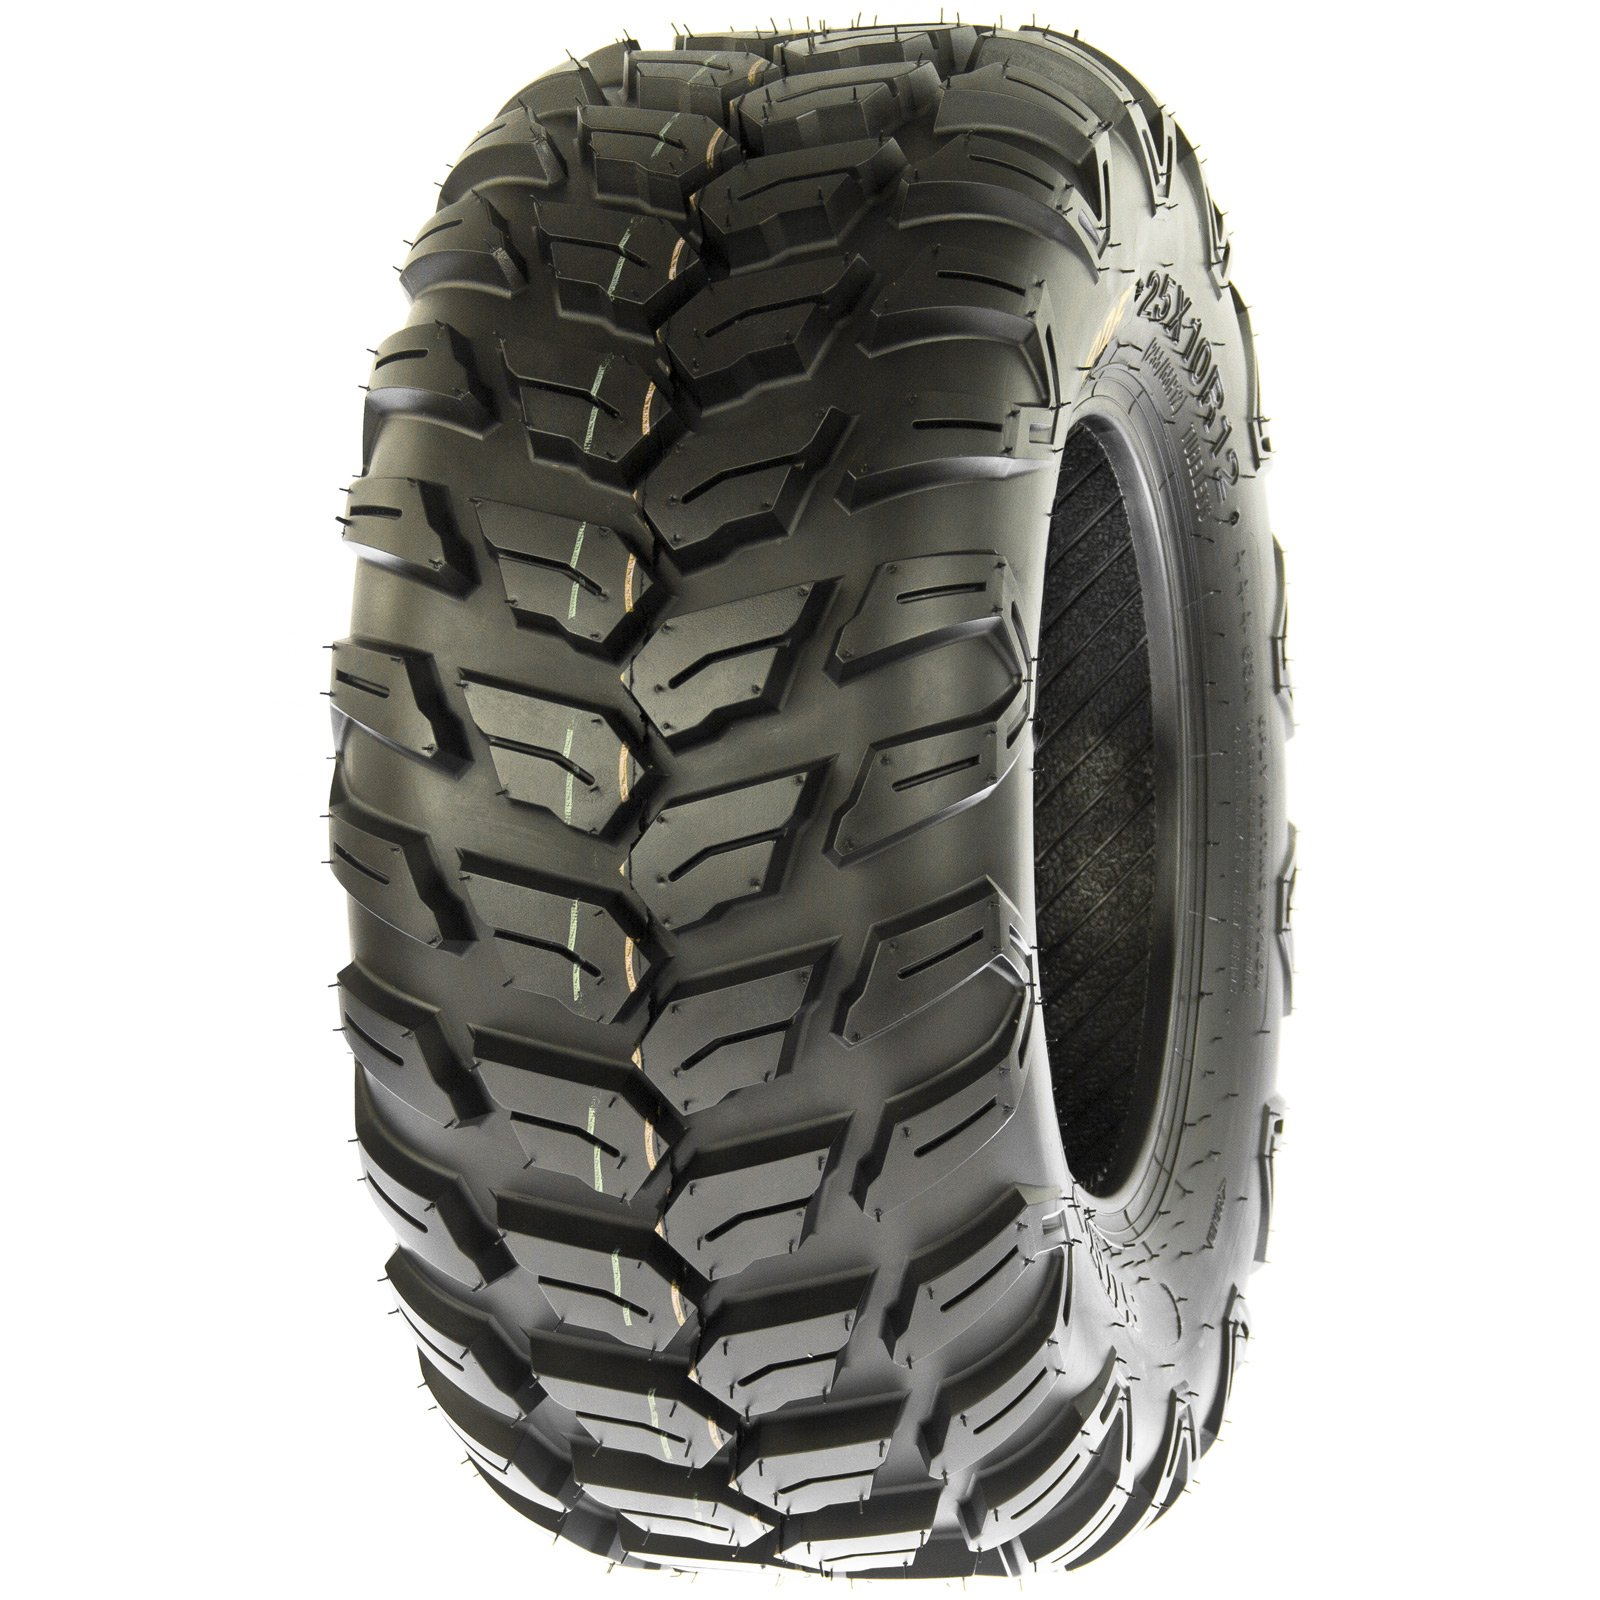 SunF A043 Sport-Performance XC ATV/UTV Off-Road RADIAL Tire - 26x11R14 (6-Ply Rated) by SunF (Image #8)